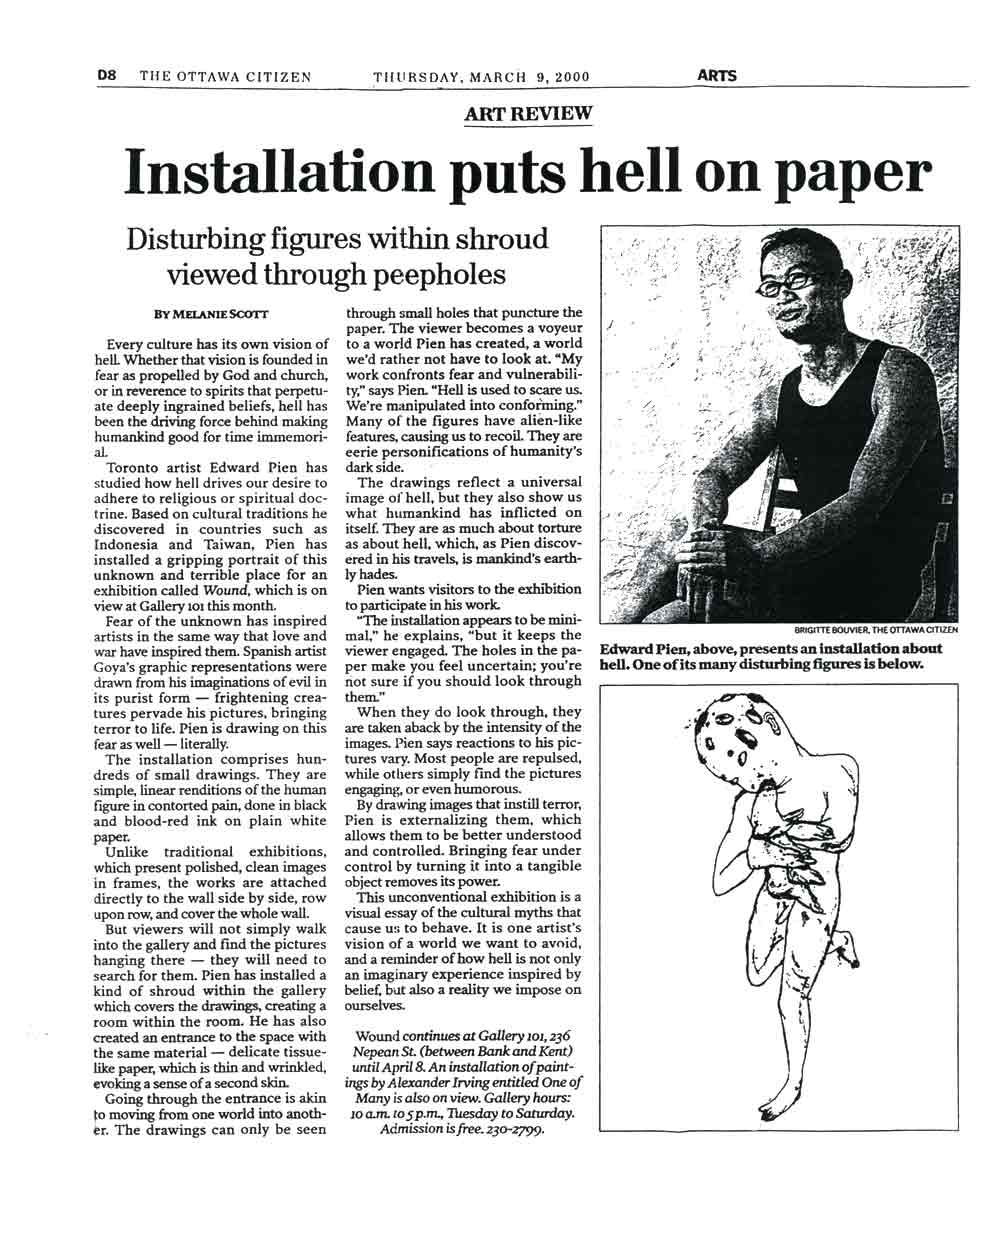 Installation Puts Hell on Paper